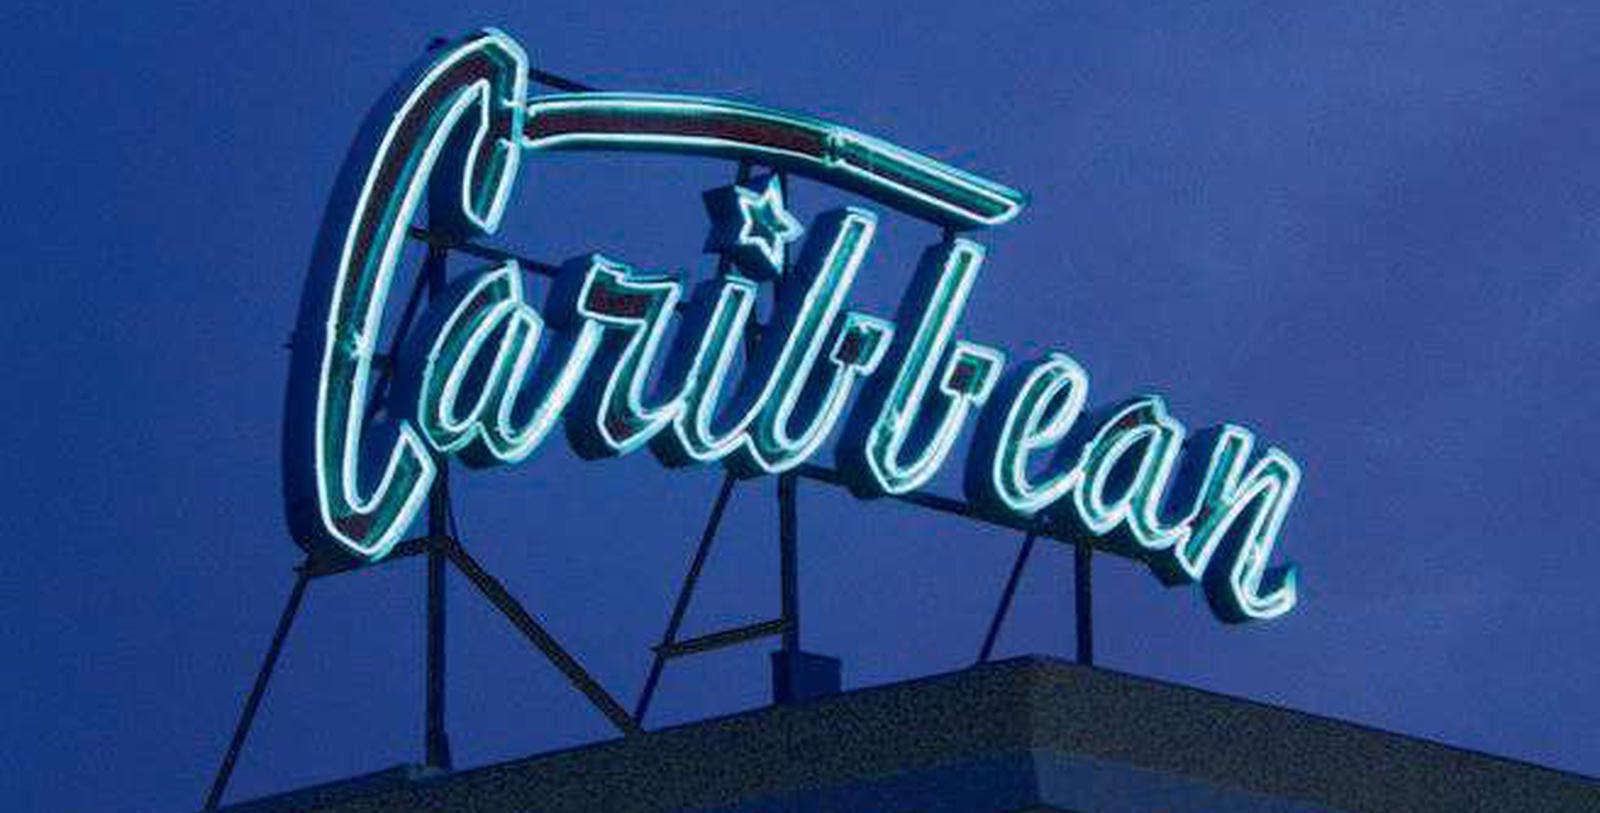 Image of Hotel sign at Caribbean Motel, 1957, Member of Historic Hotels of America, in Wildwood Crest, New Jersey, Experience